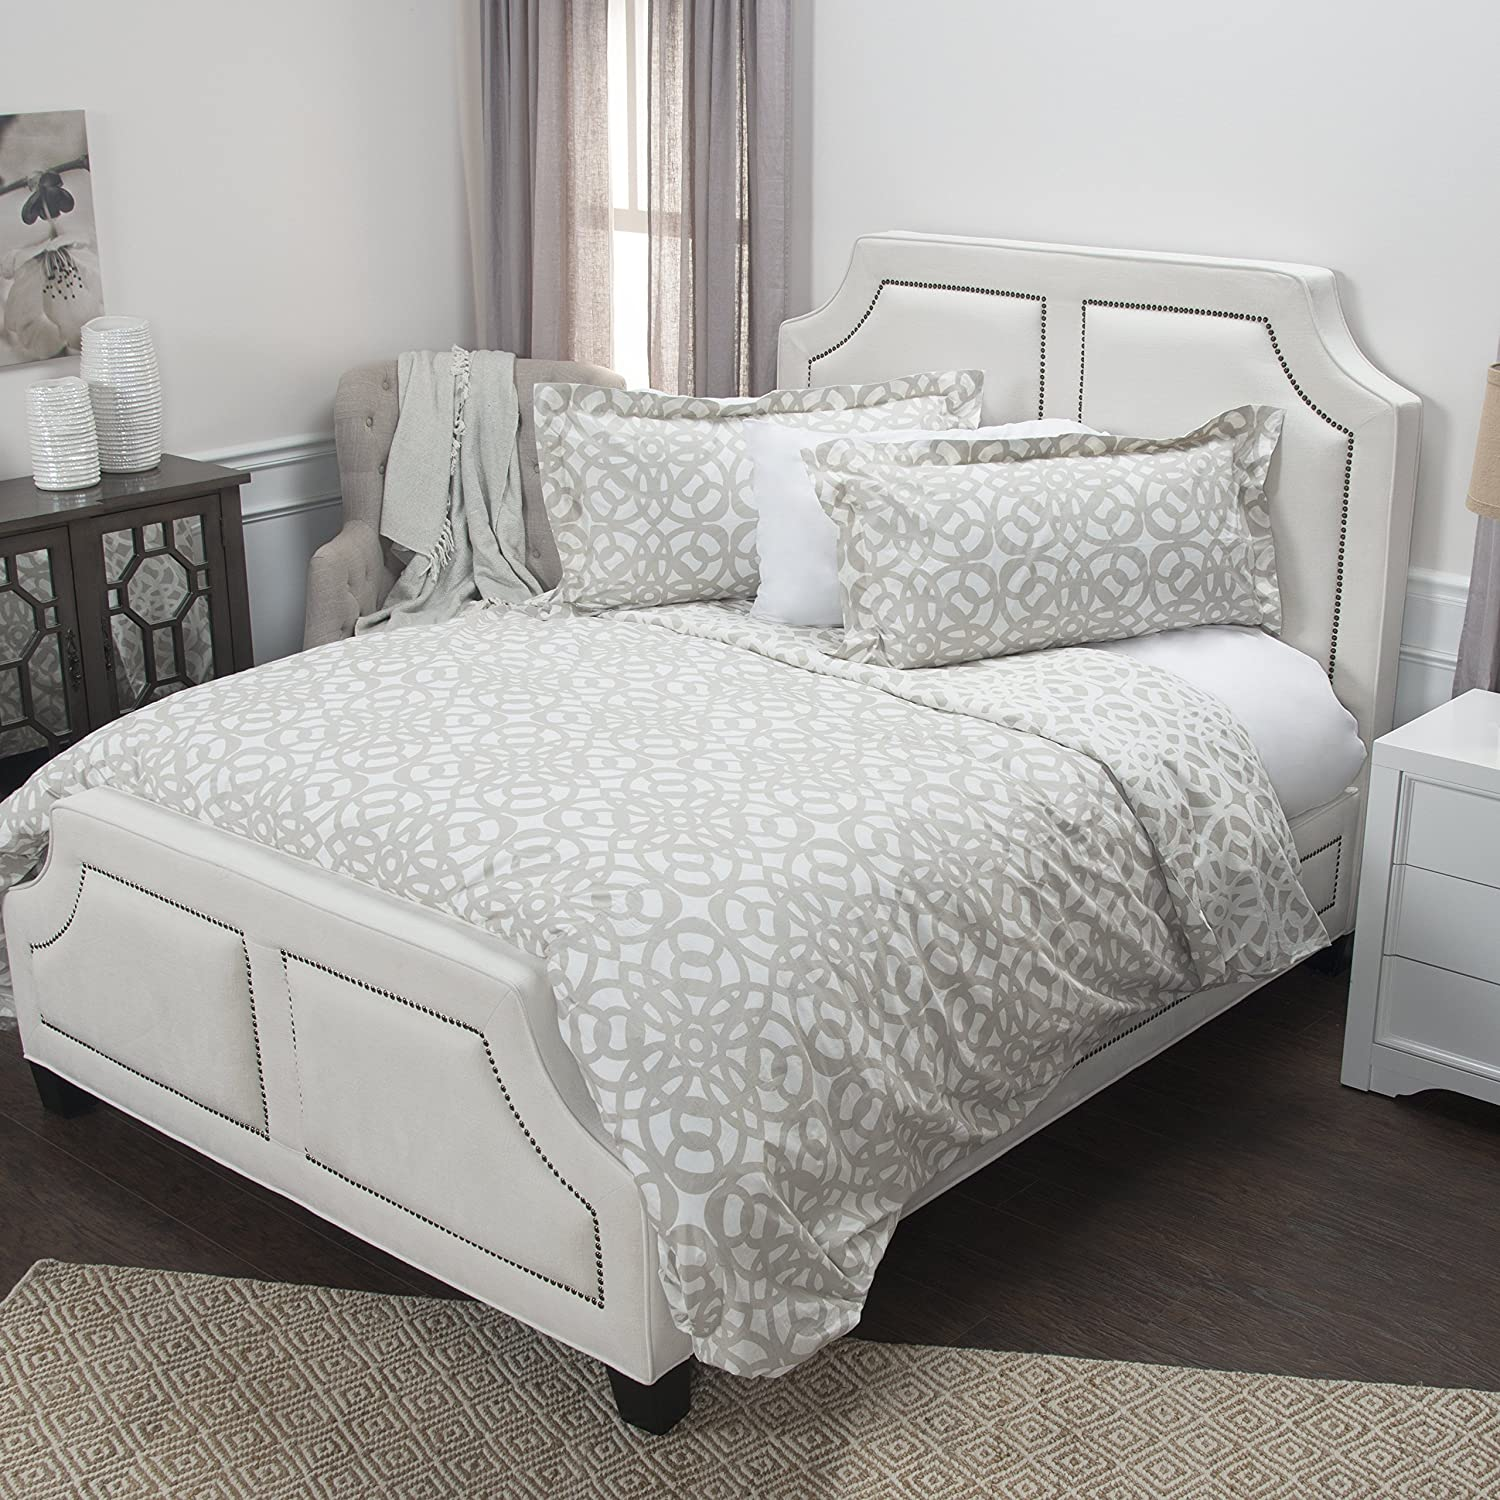 Rizzy Home Happy Together Doh Duvet, Queen, Taupe/Ivory DOHBT4453IVTA82SQ